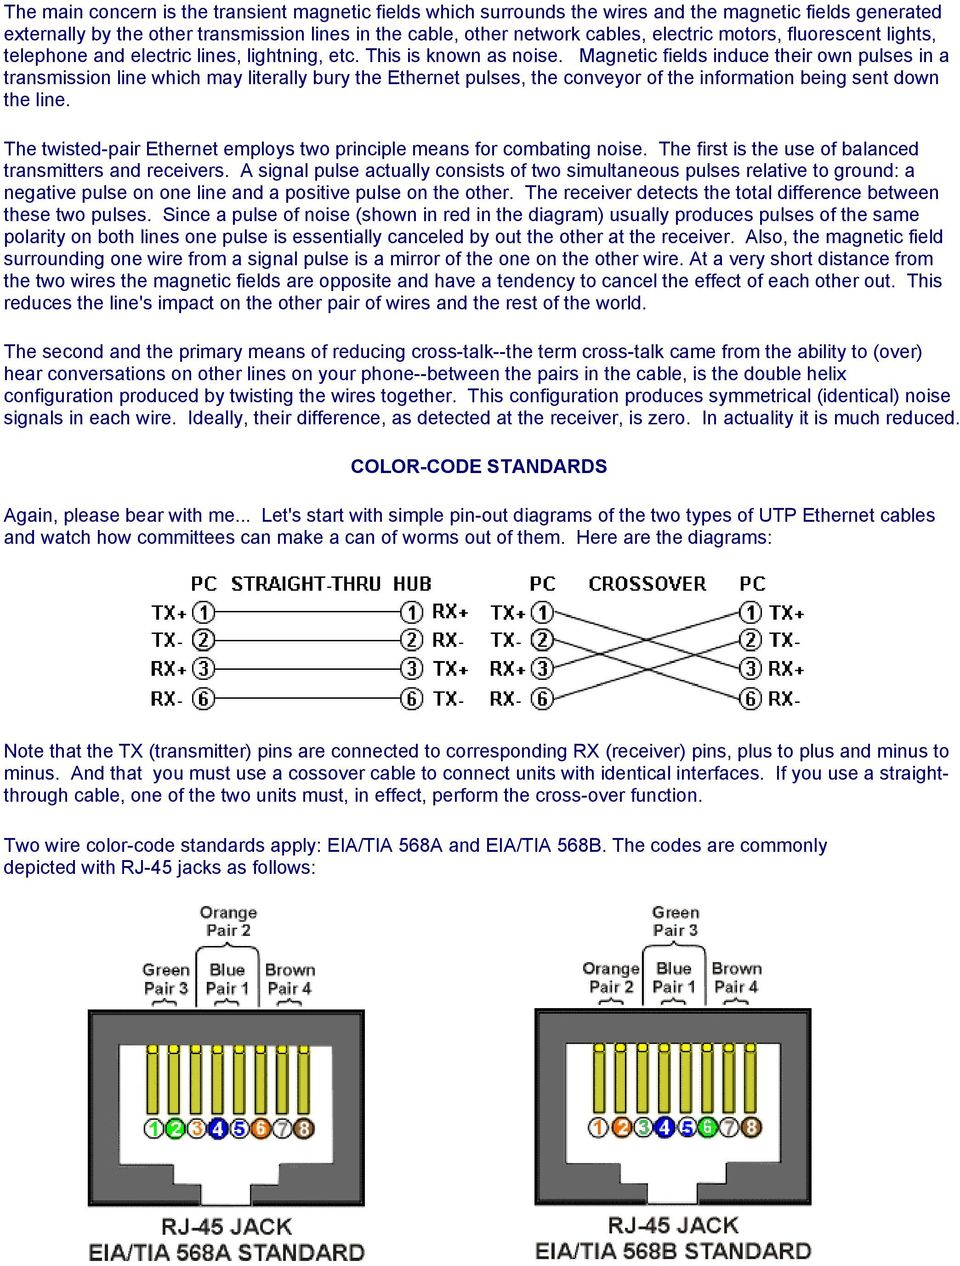 Standard Ether Cable Wiring Diagram As Well 568b Crossover Cable Color